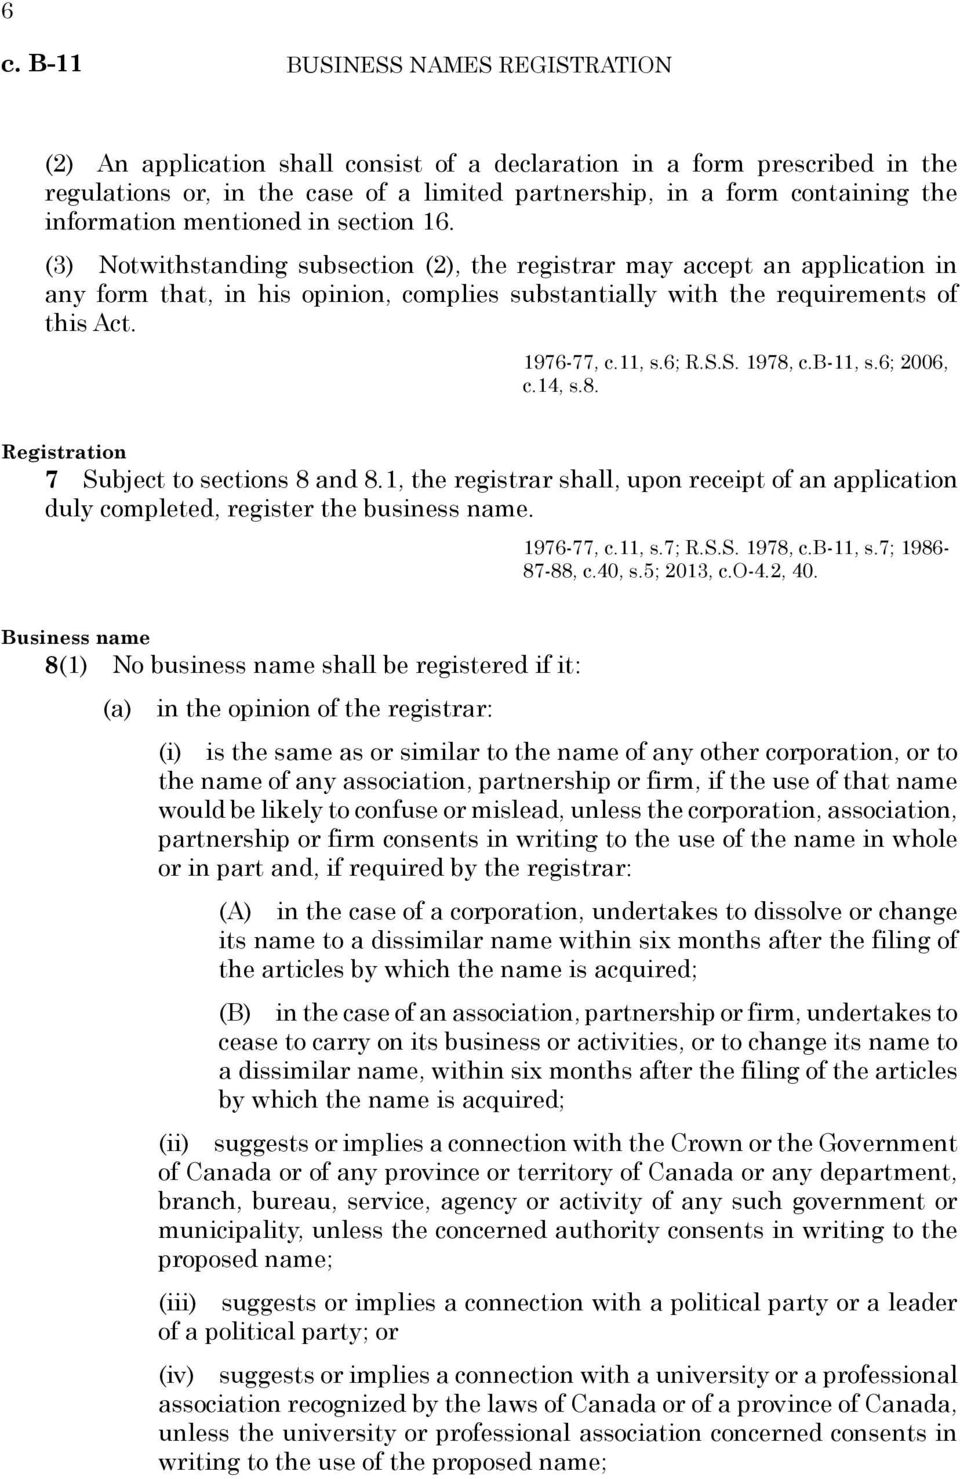 (3) Notwithstanding subsection (2), the registrar may accept an application in any form that, in his opinion, complies substantially with the requirements of this Act. 1976-77, c.11, s.6; R.S.